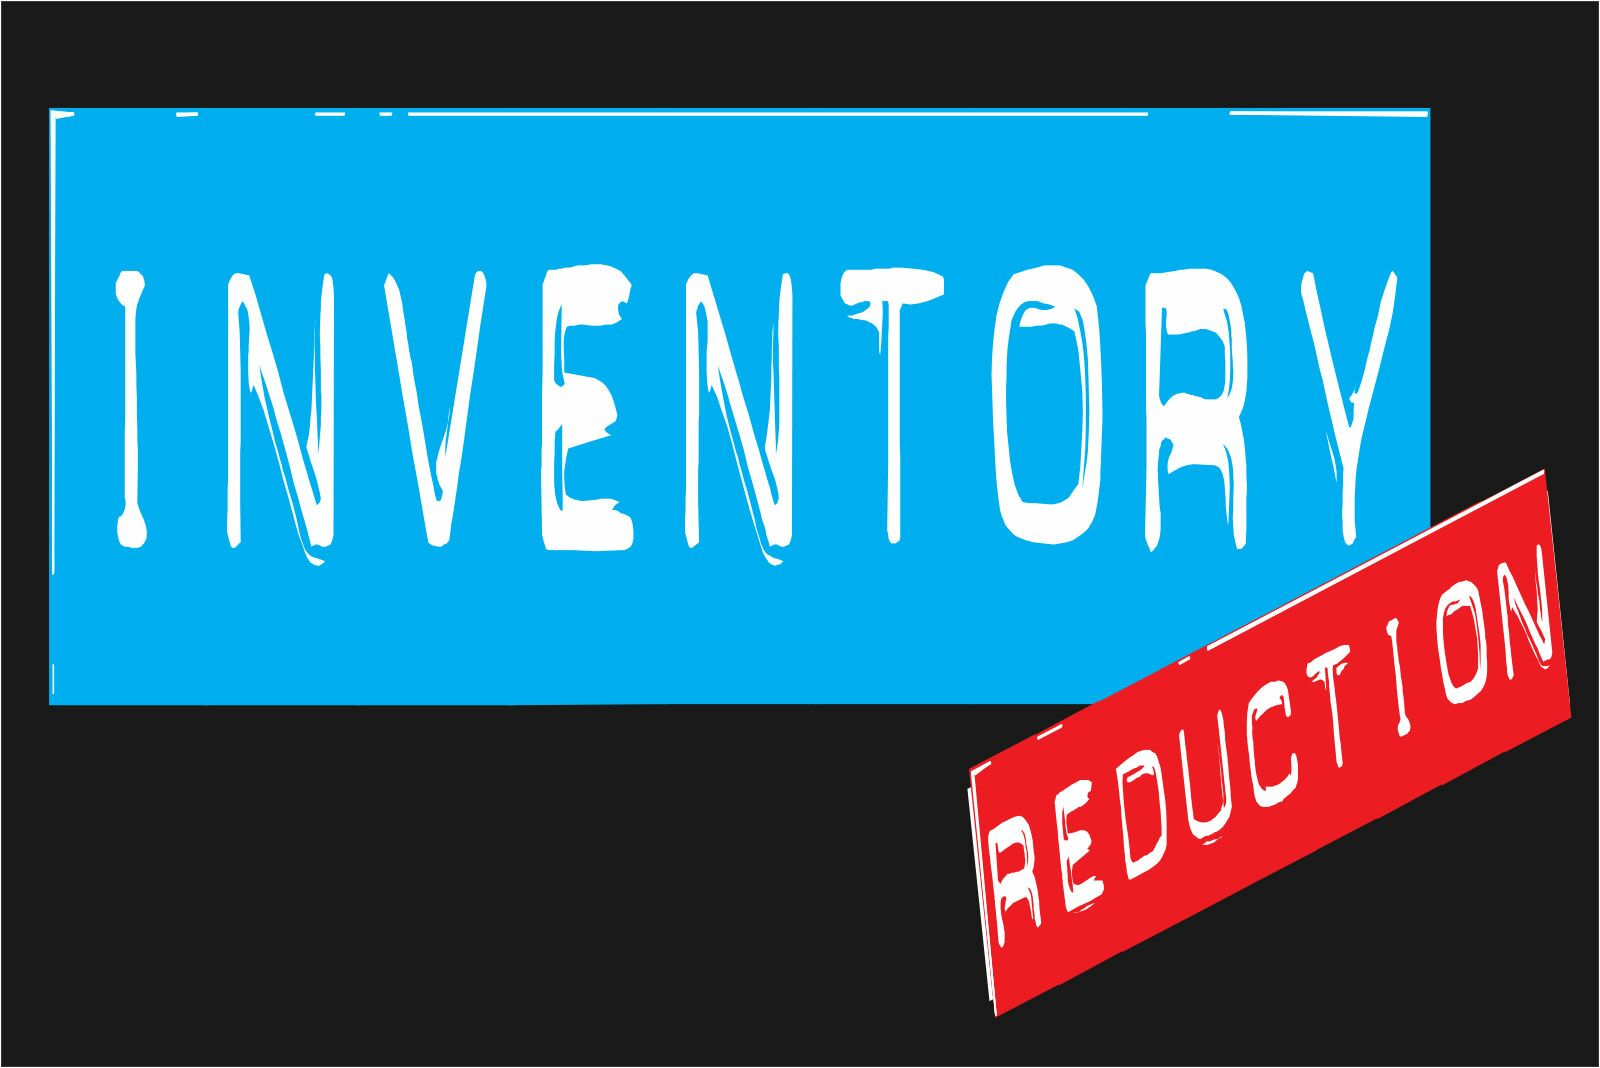 Inventory Reduction Banner Size: 24